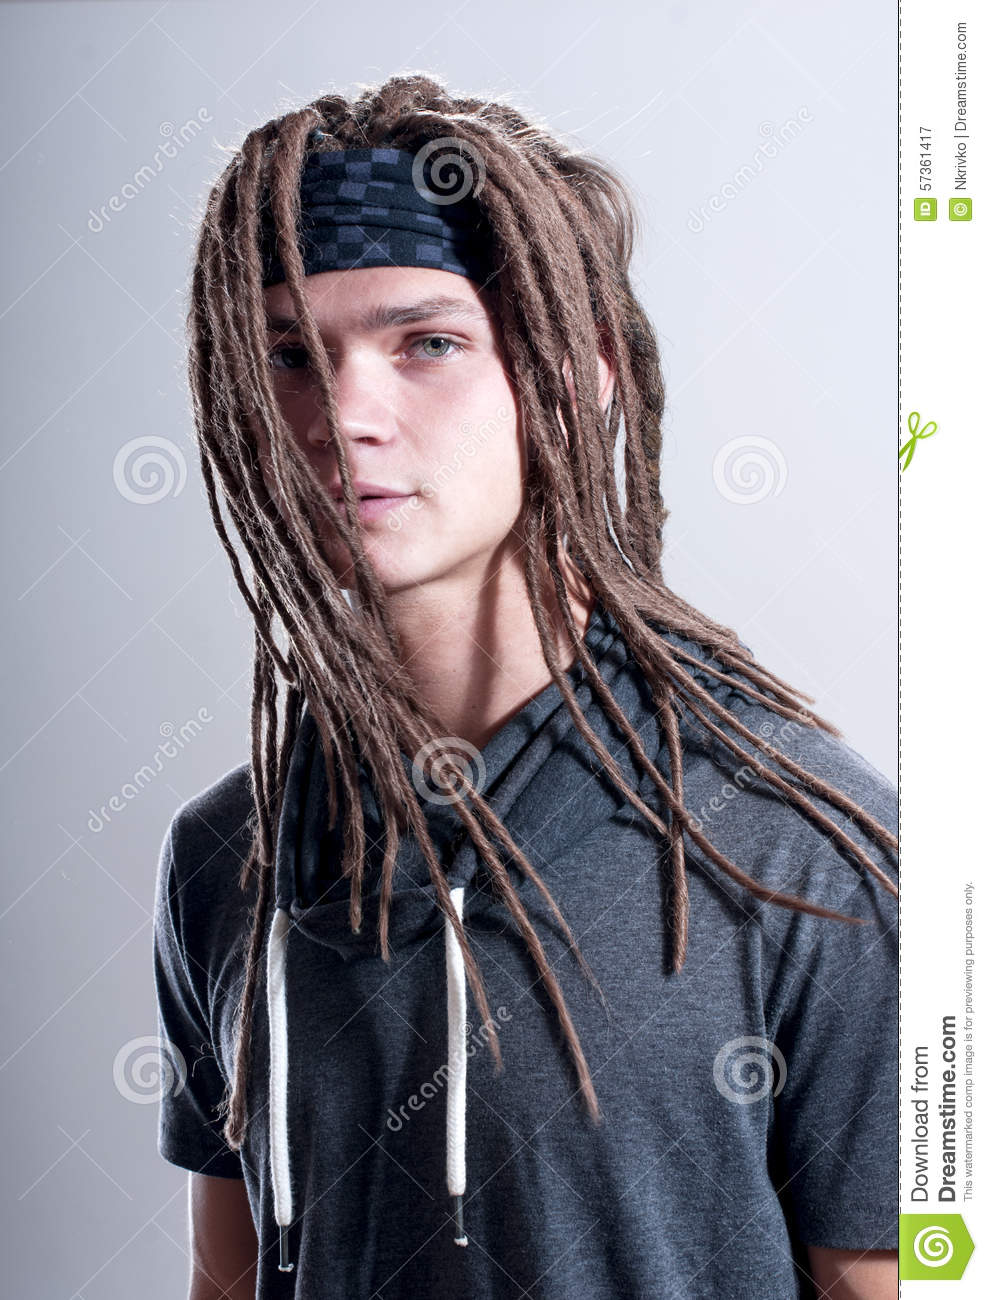 Young Stylish Guy With Dreadlocks Stock Image Image Of